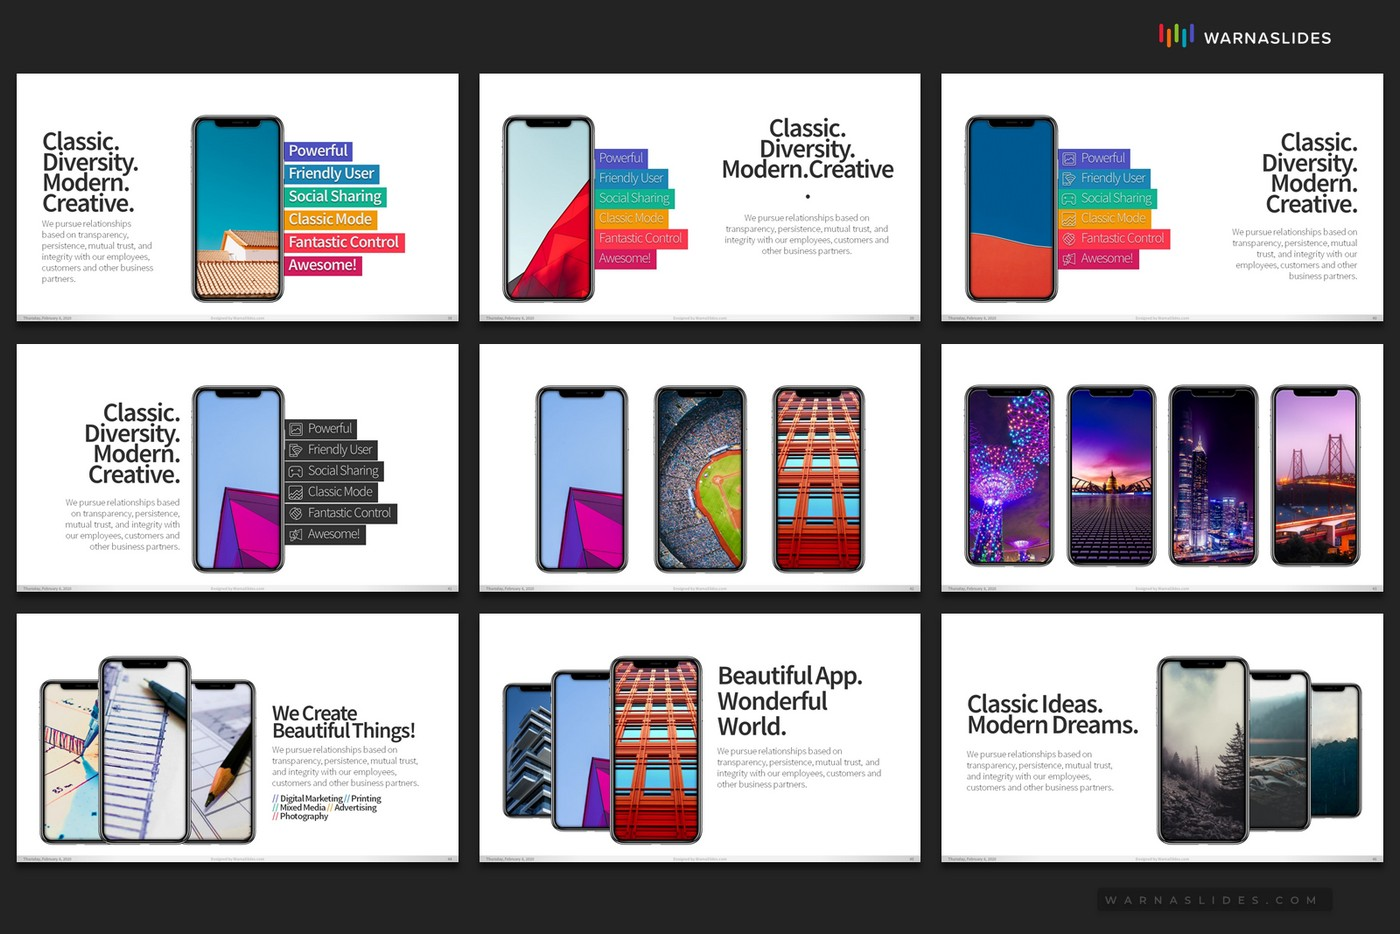 Devices-Smartphone-App-PowerPoint-Template-for-Business-Pitch-Deck-Professional-Creative-PowerPoint-Icons-010